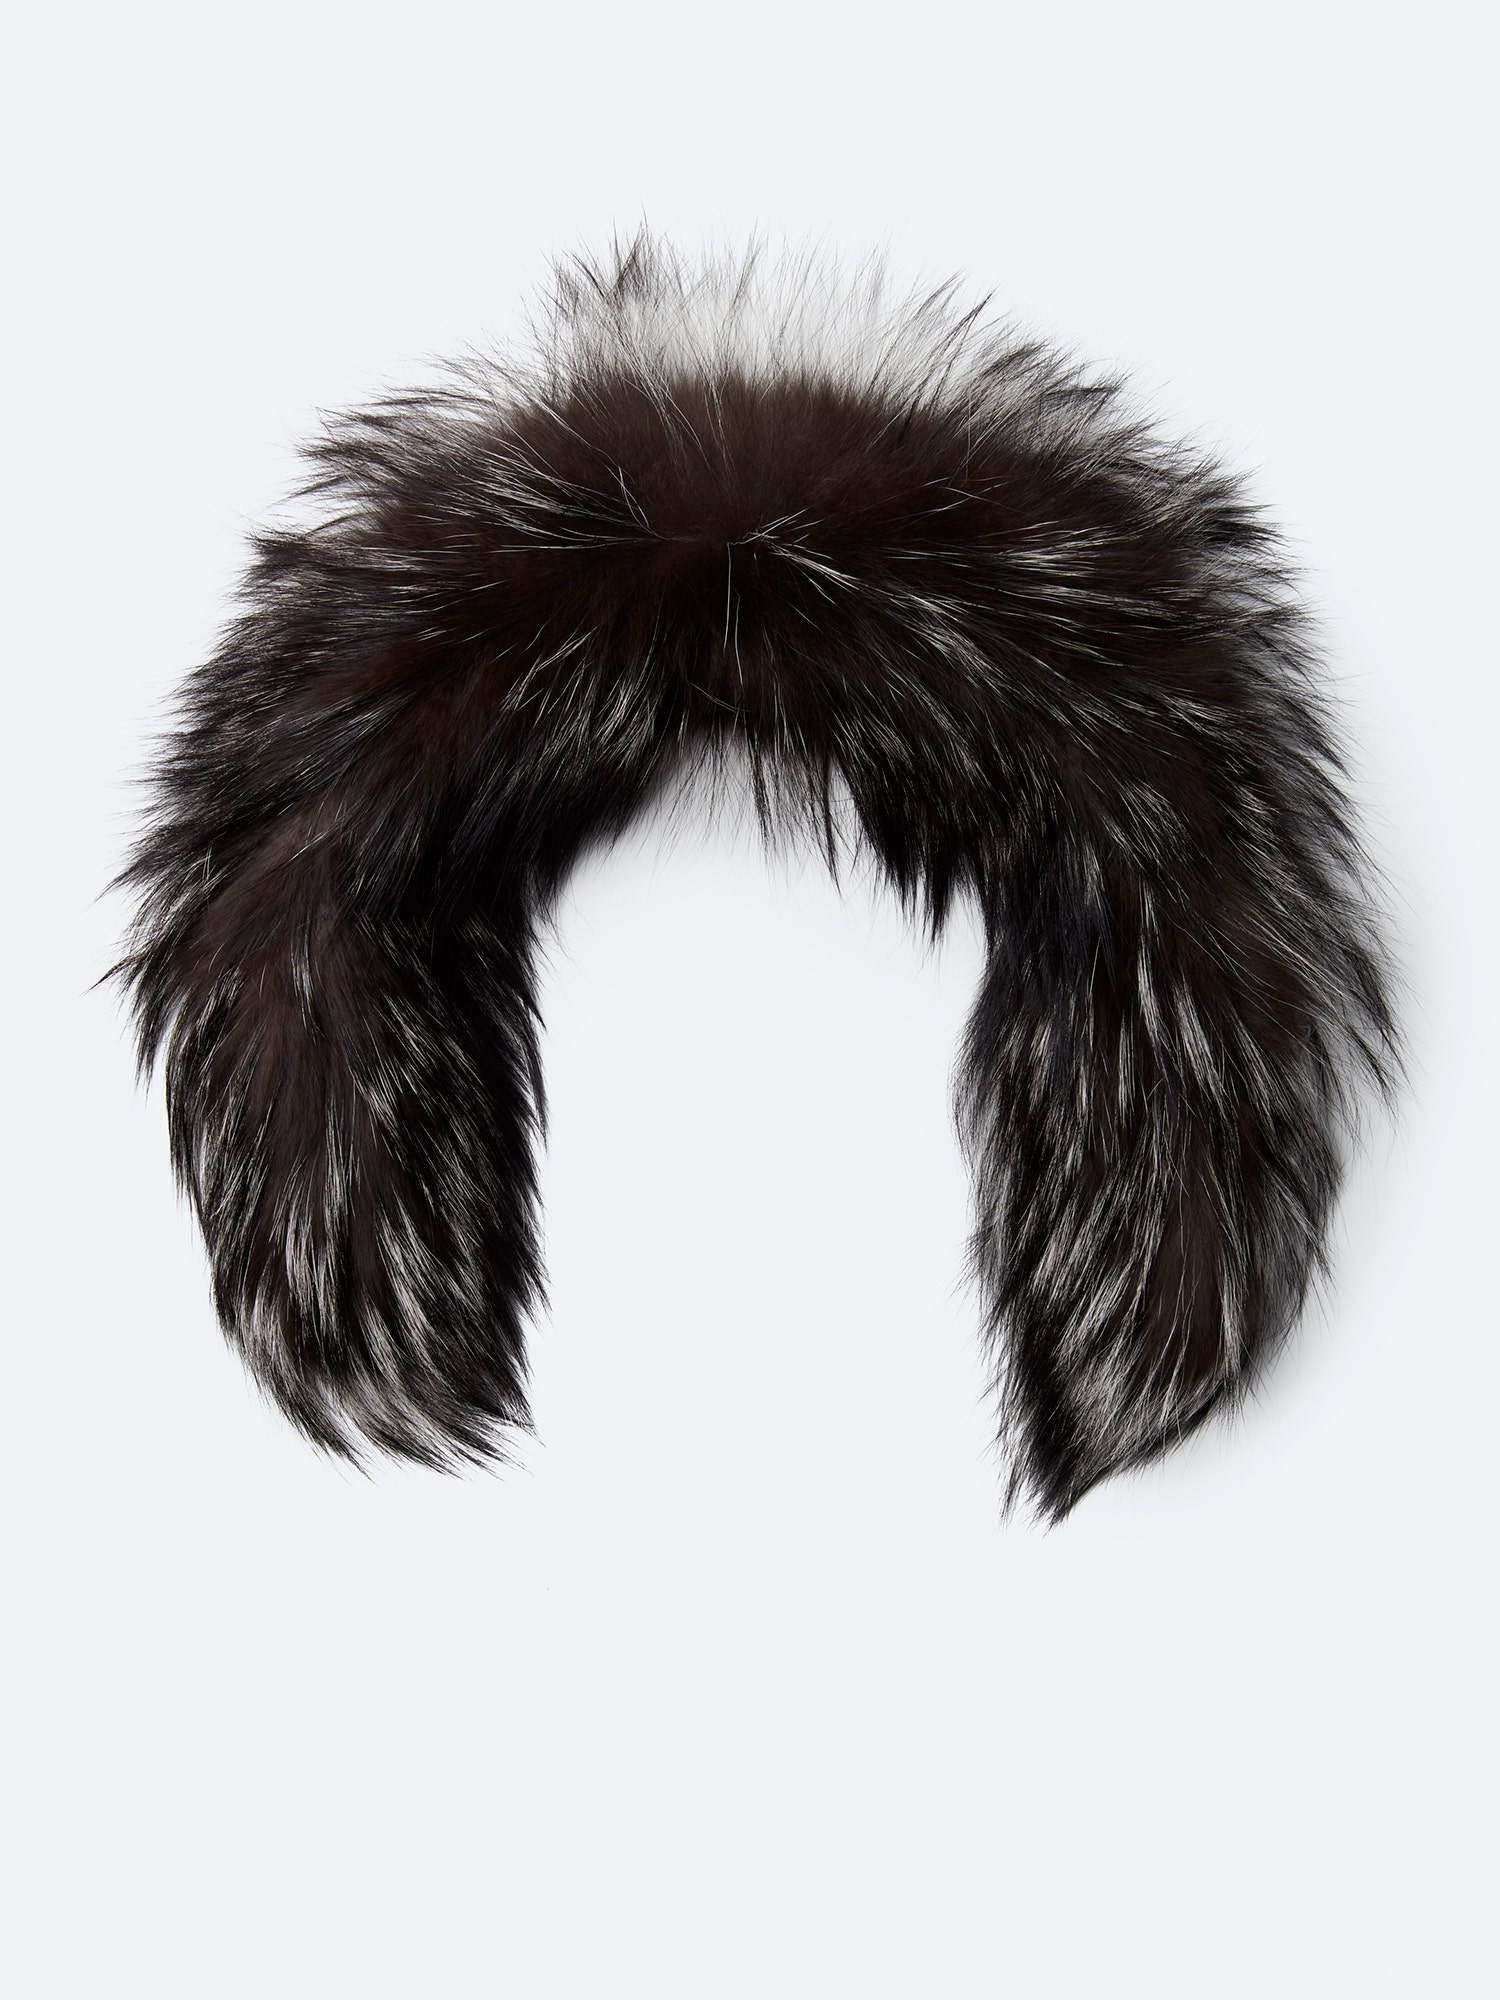 Fur silver 23 inches